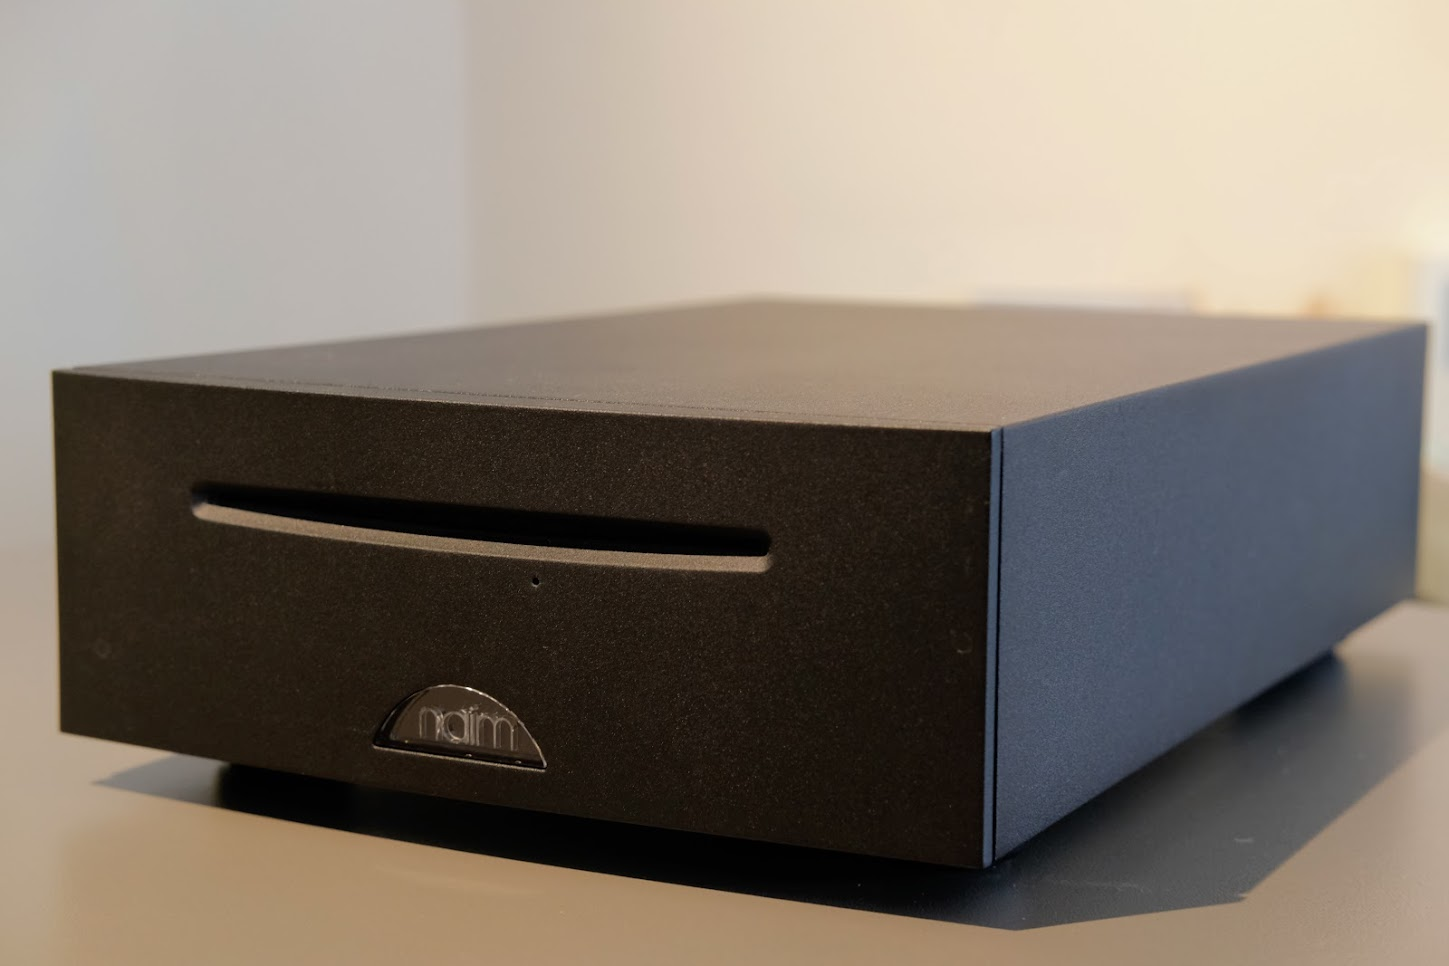 Picture of Naim UnitiServe 2Tb